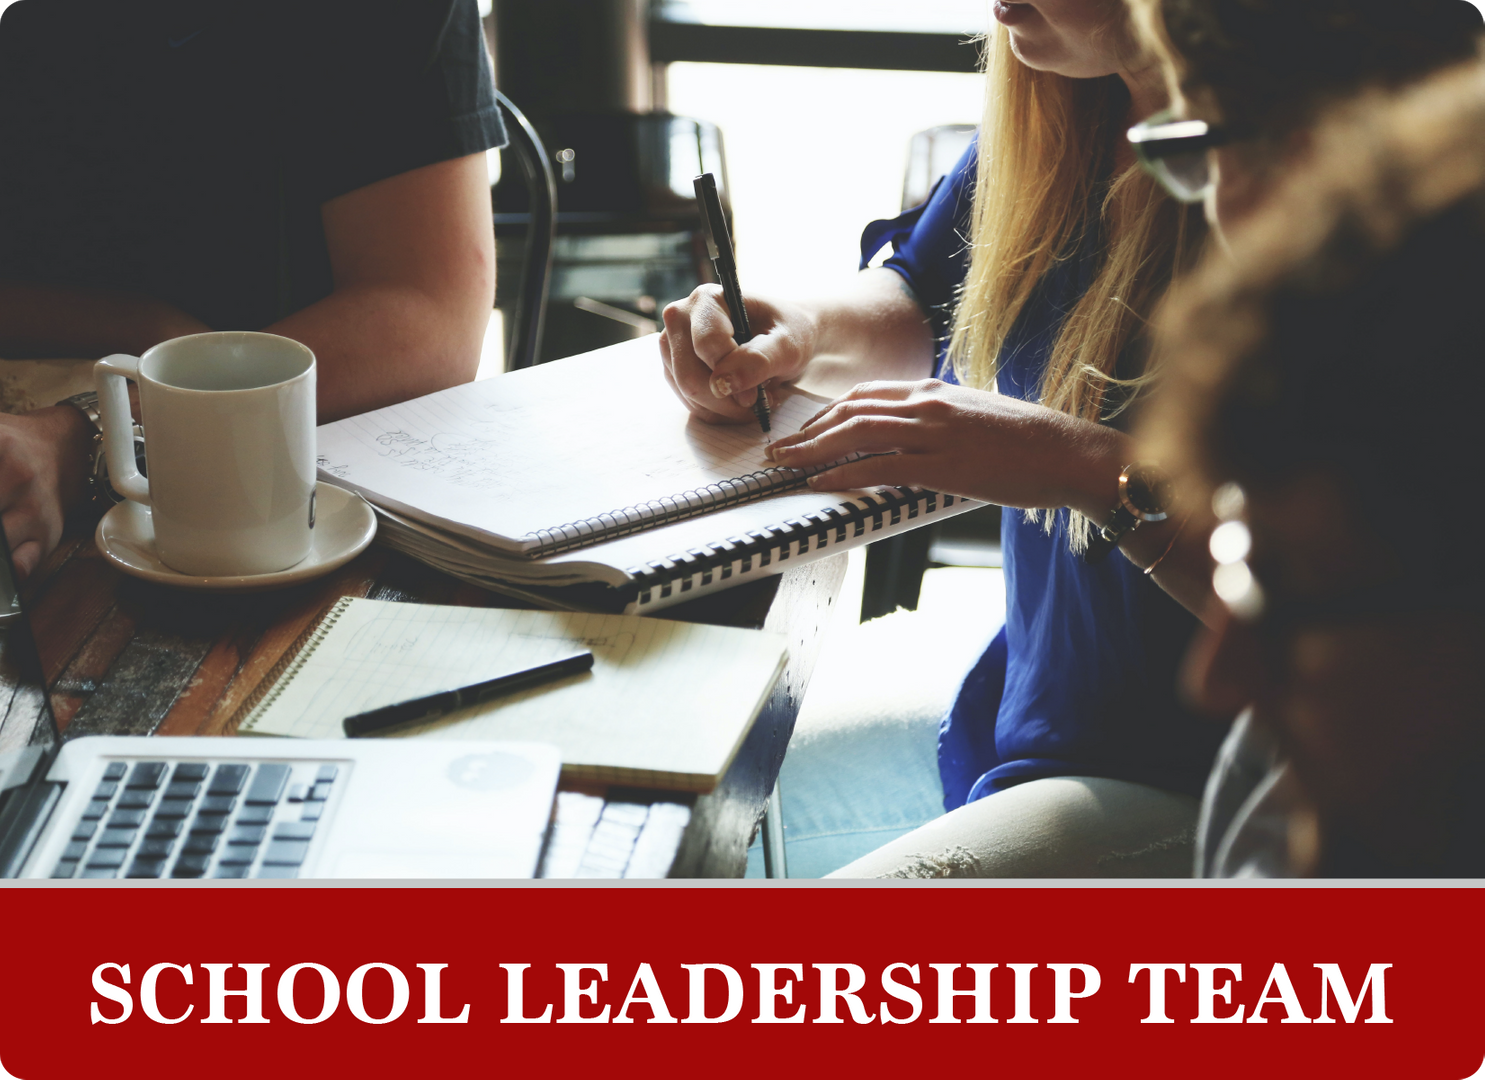 School Leadership Team: Adults working together